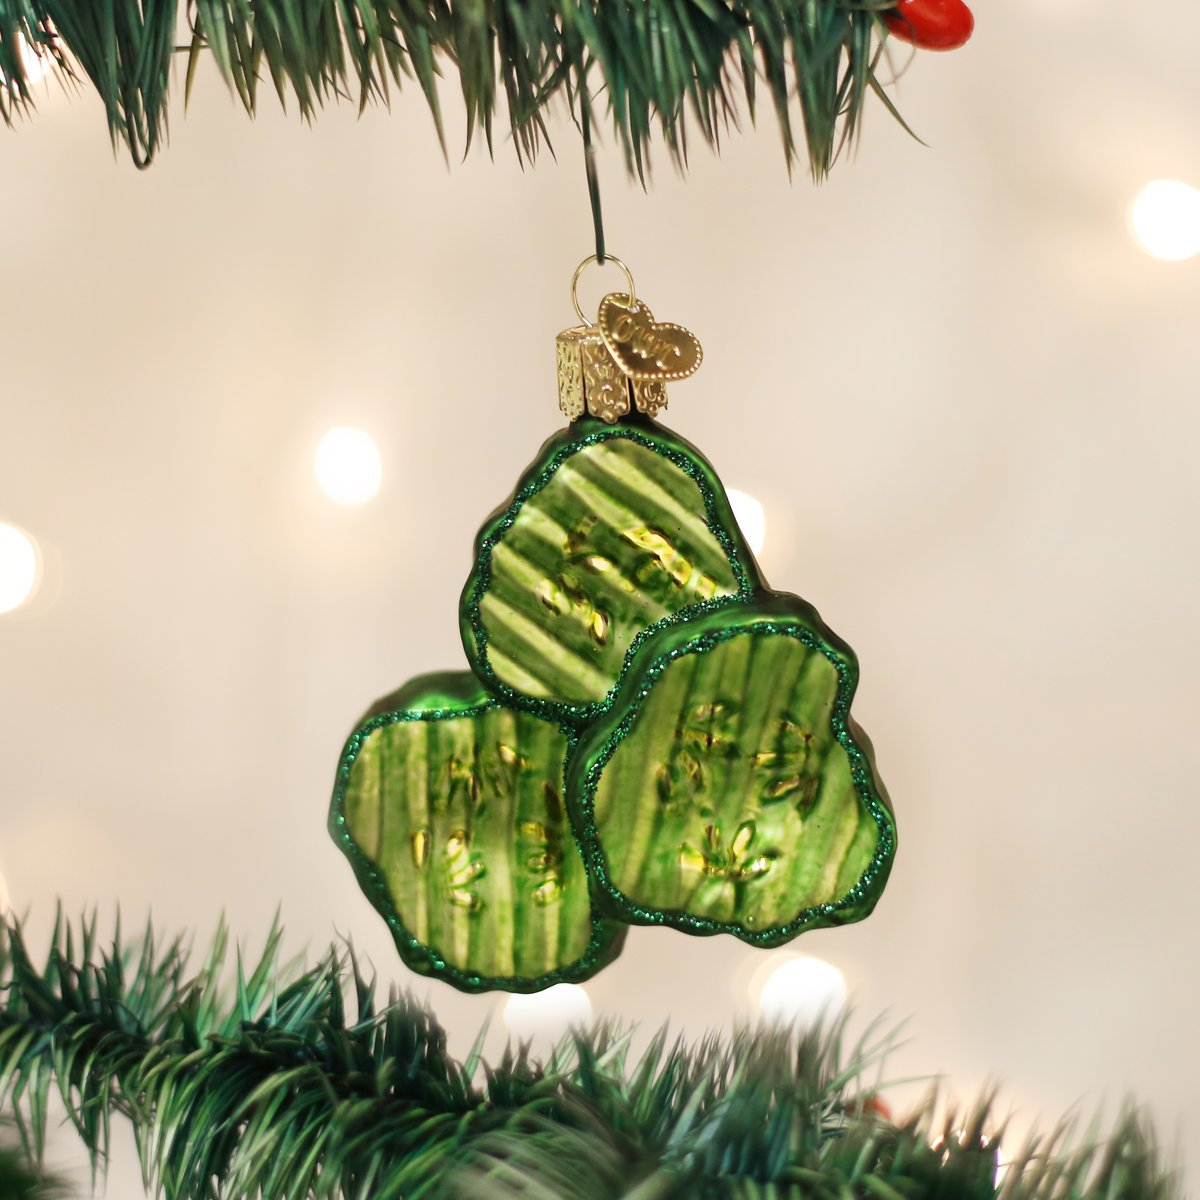 Amazon.com: Old World Christmas Ornaments: Pickle Glass Blown ...